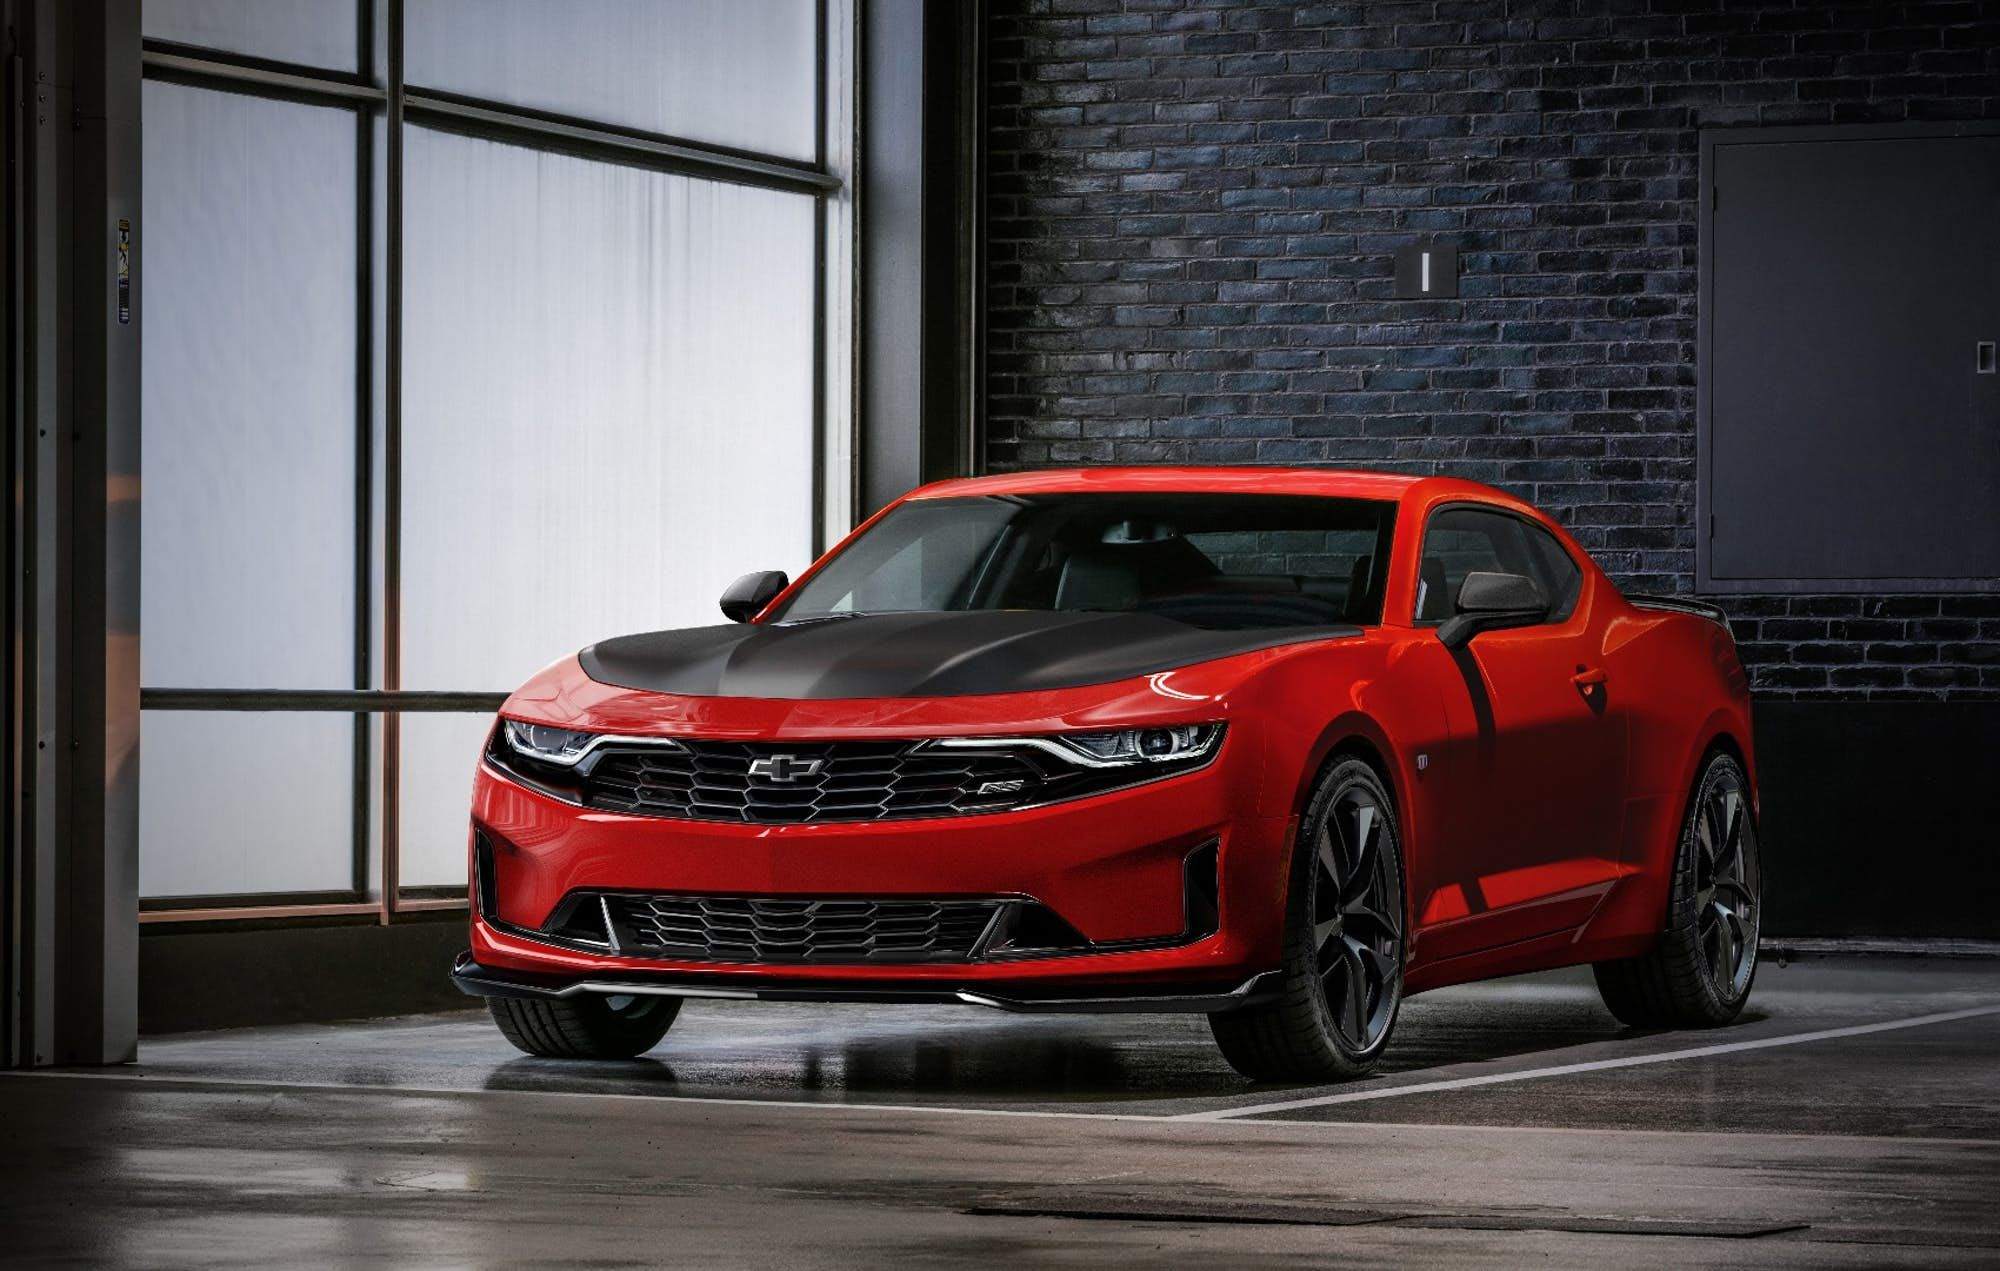 Chevy Gives The 2019 Camaro A New Face And New Options Chevrolet Camaro 2019 Camaro Camaro Rs